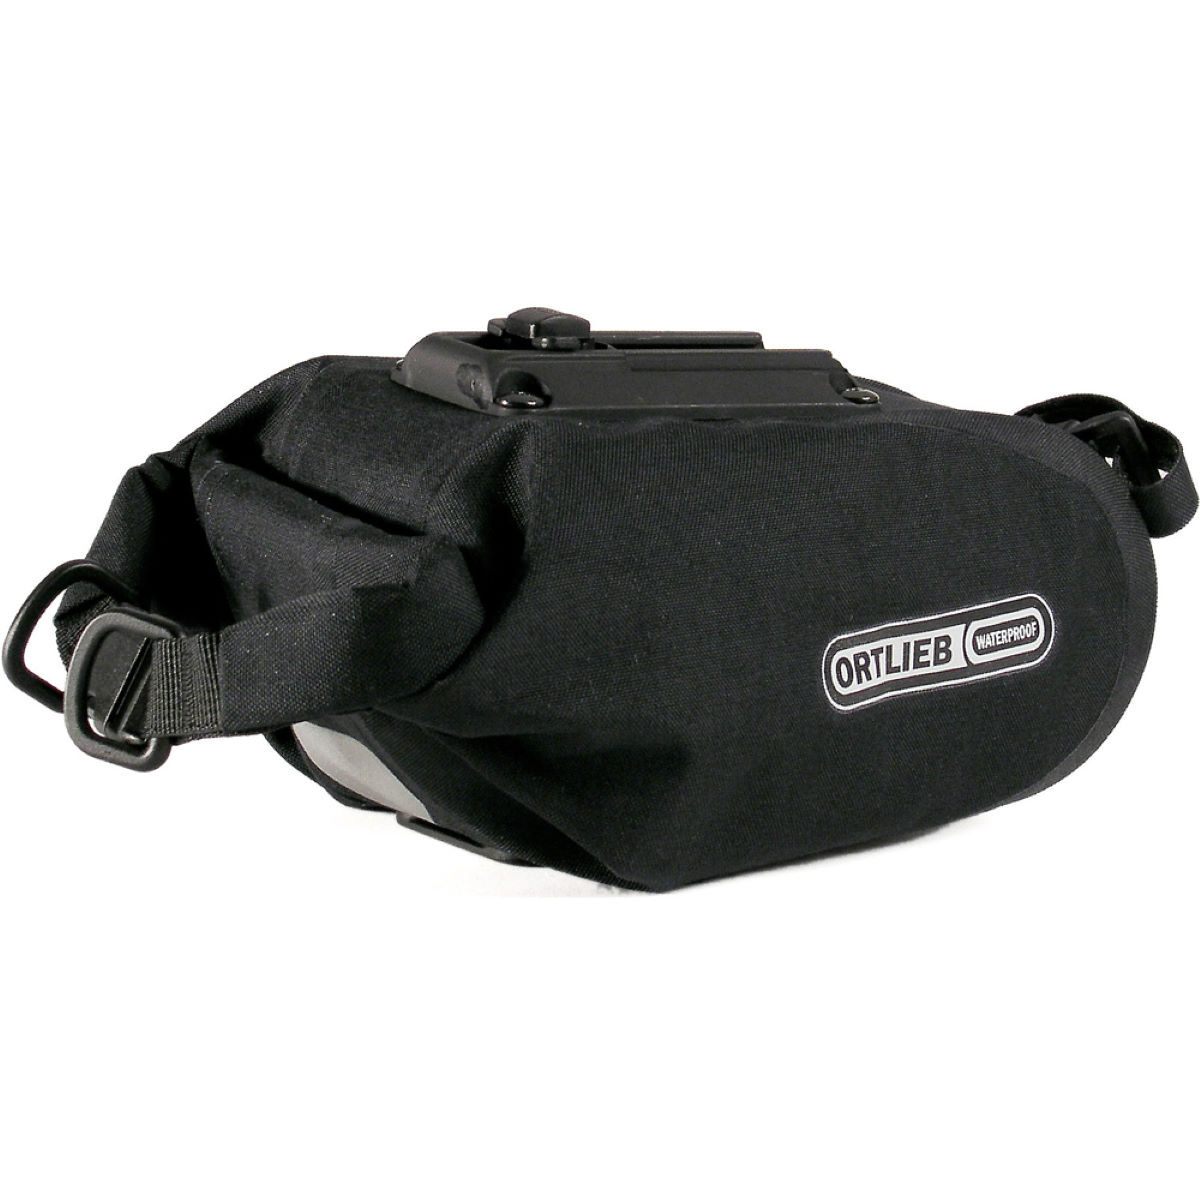 Ortlieb Classic Medium Saddle Bag